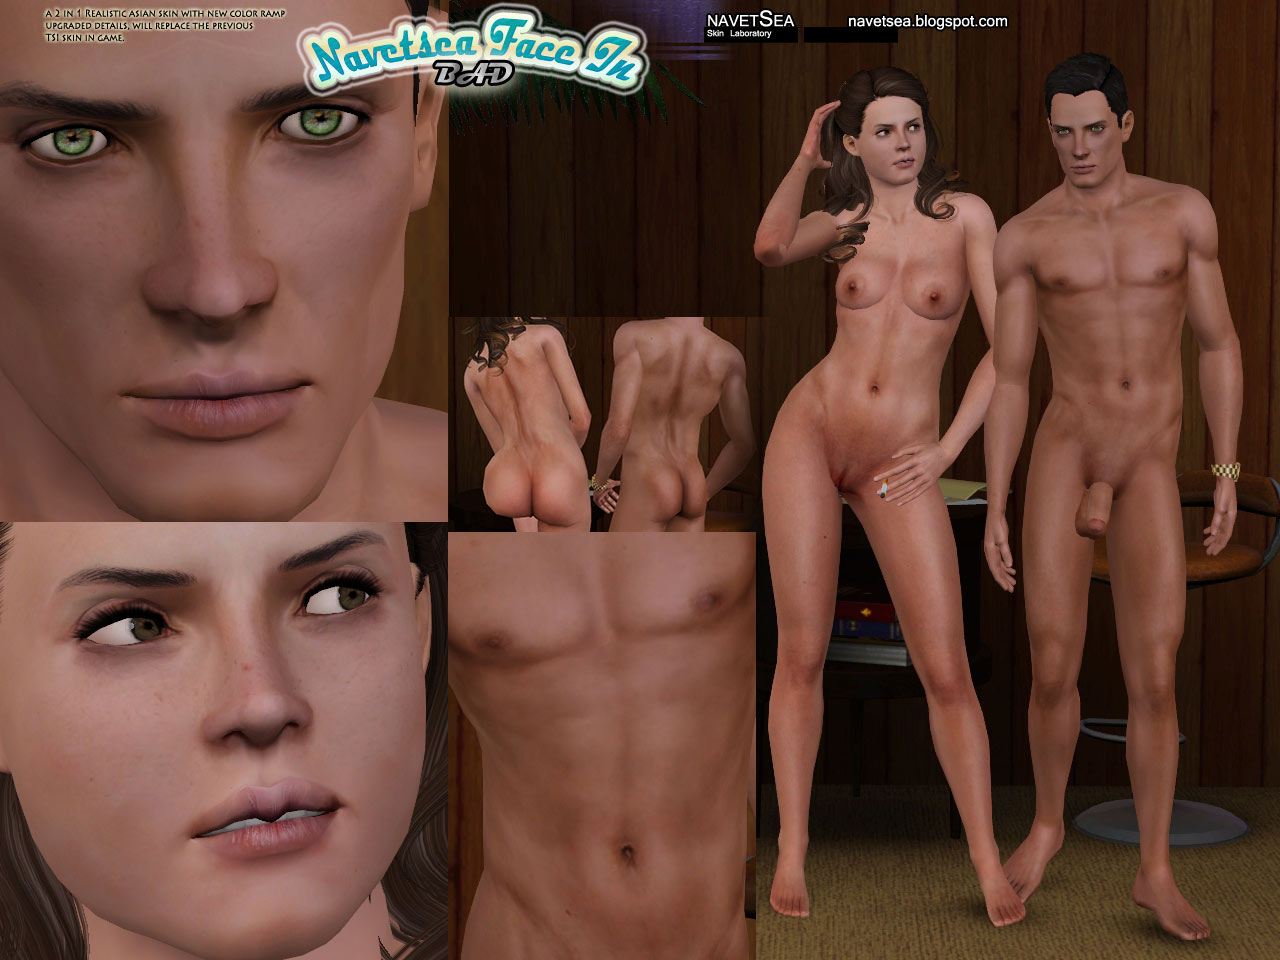 Sims uncensored sex naked photos